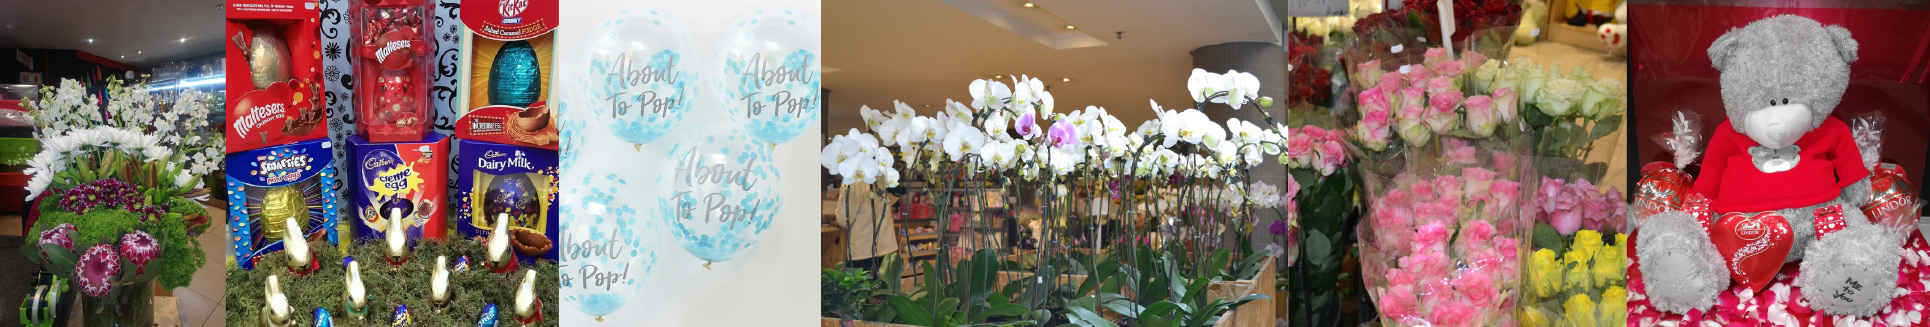 Melrose Flower Market, gifts and more